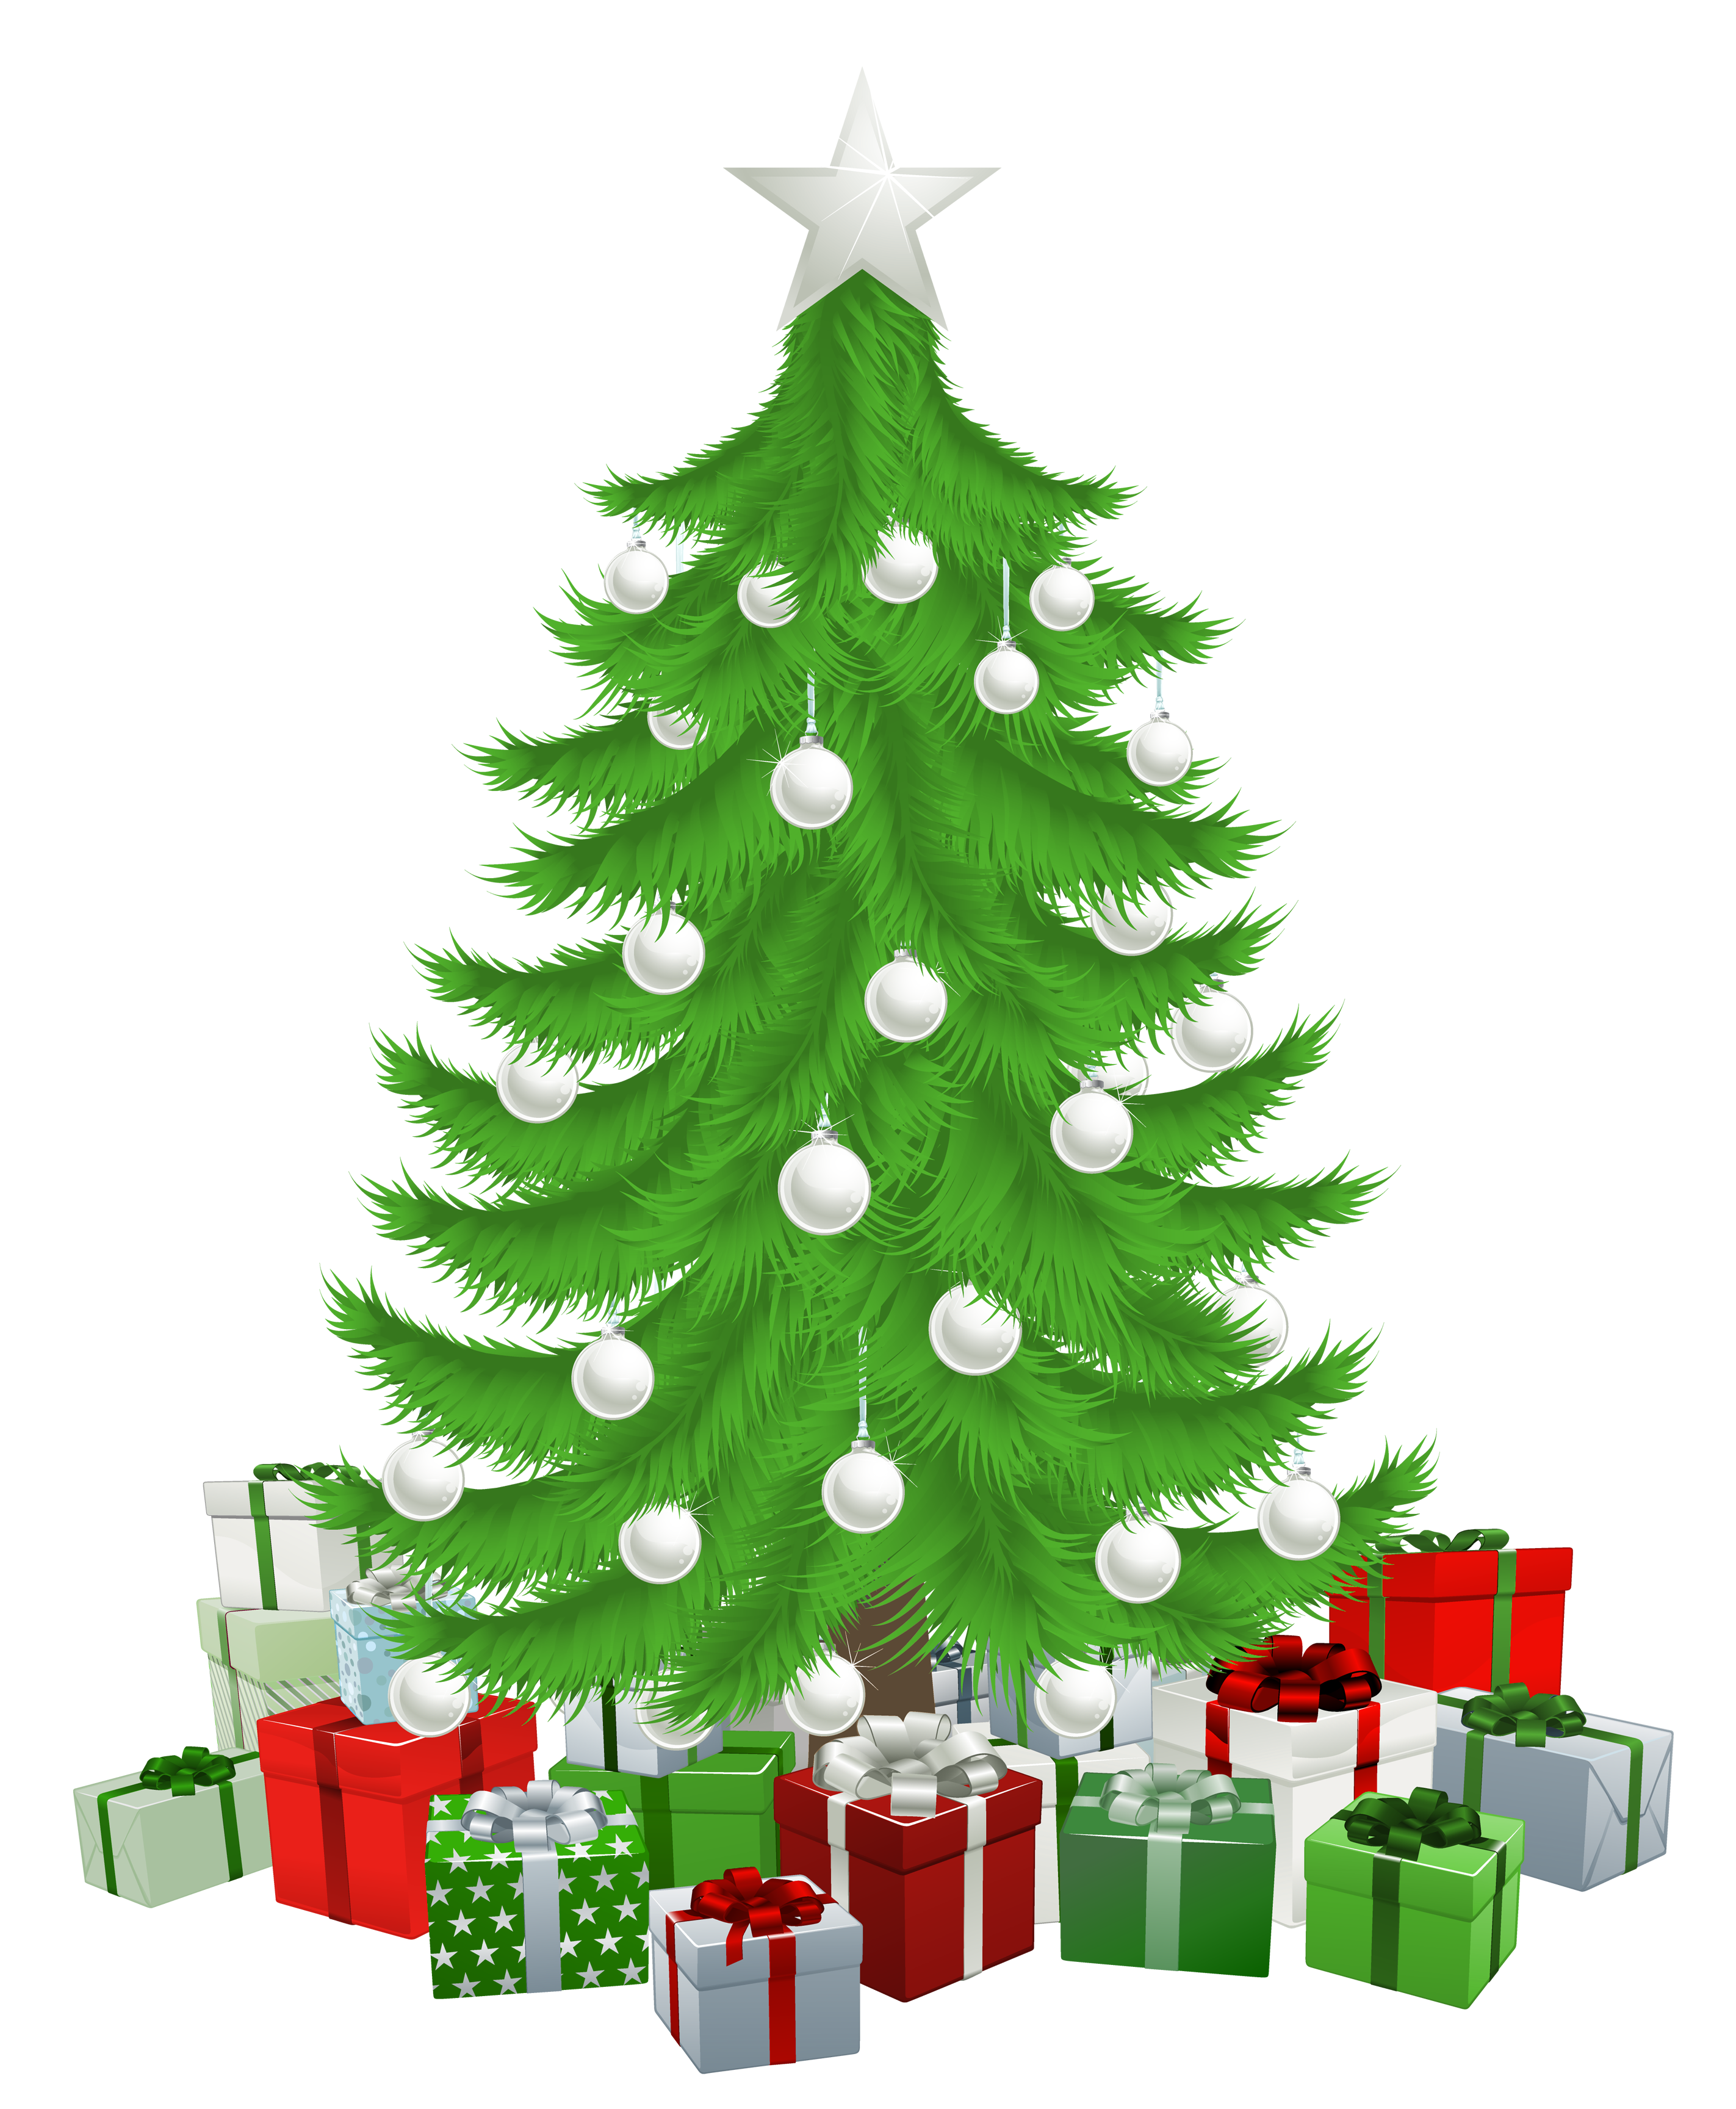 Christmas tree with presents png. Transparent clipart picture gallery